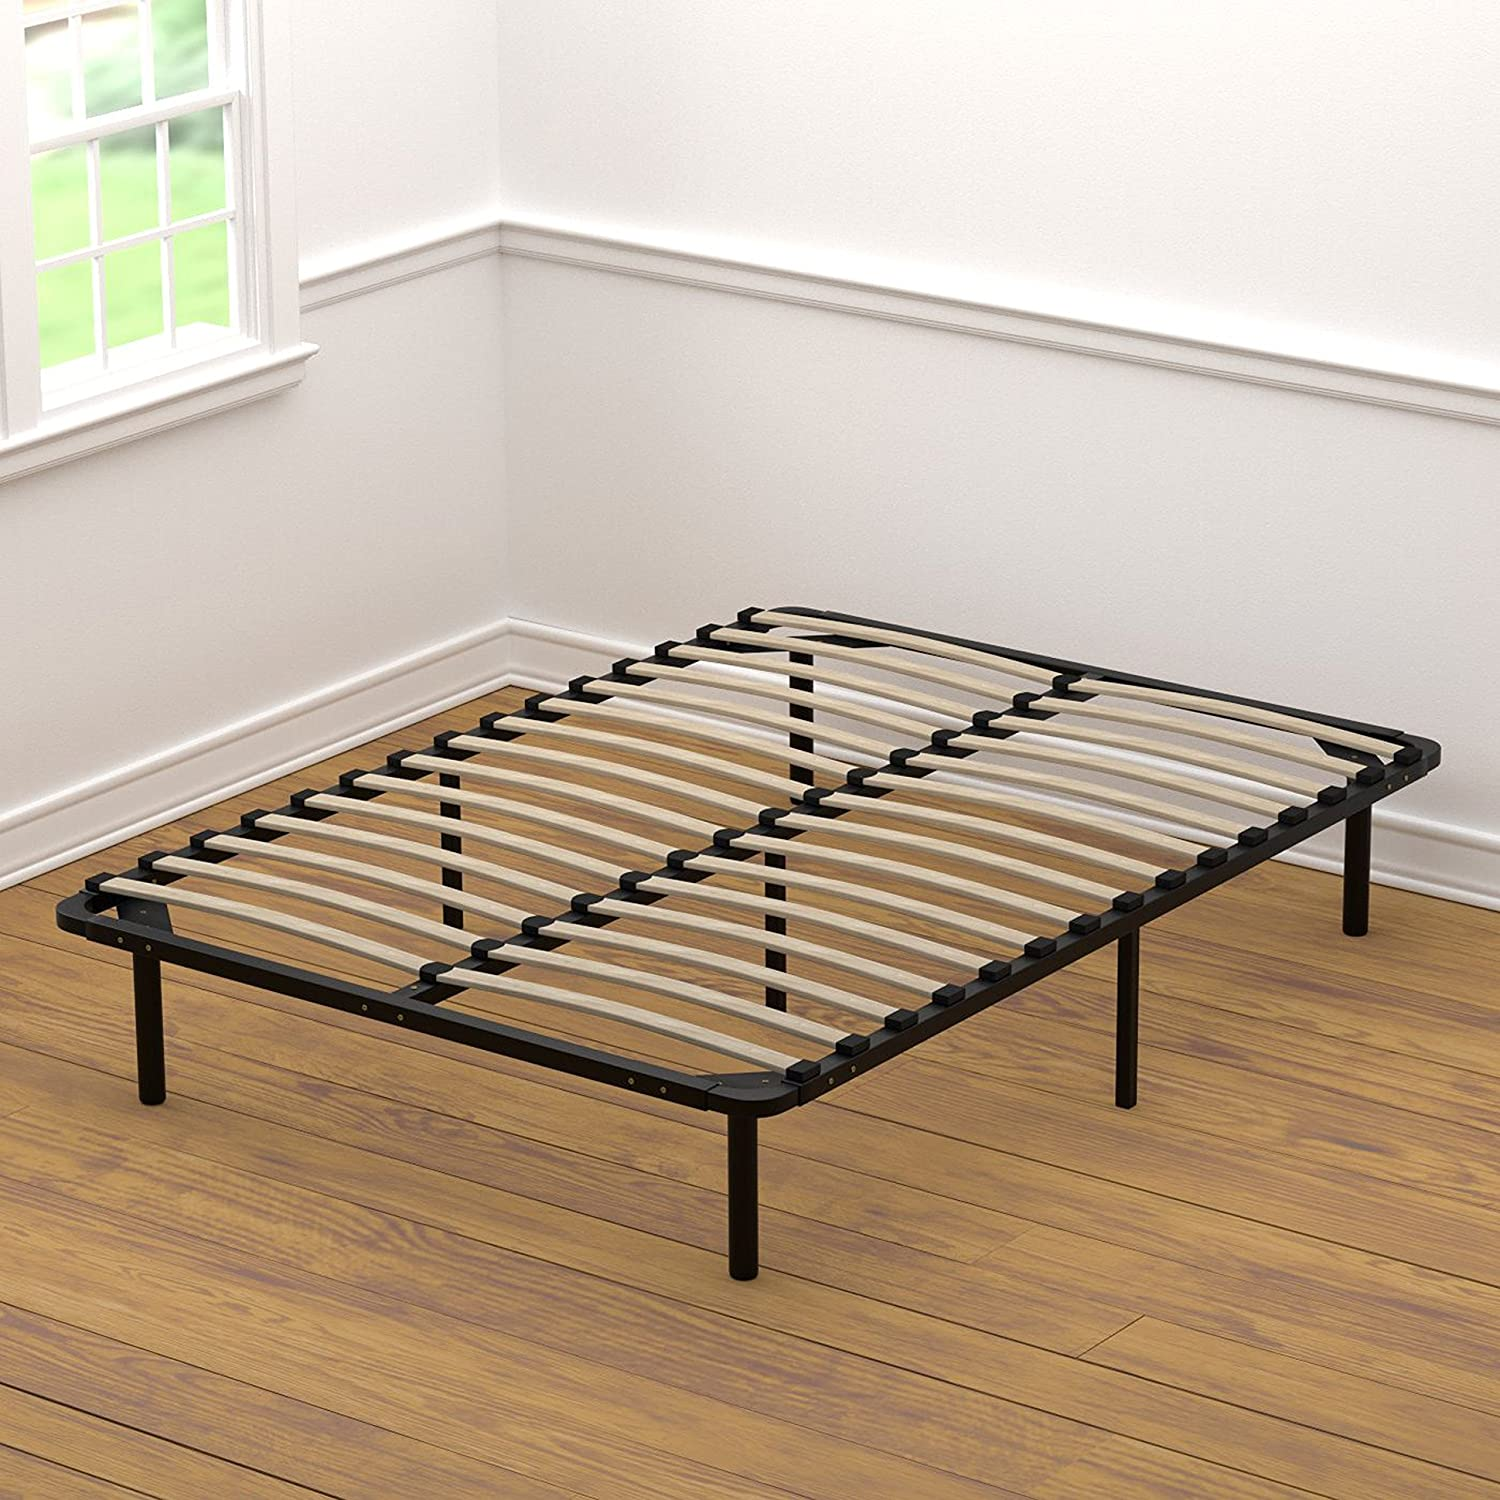 Amazon.com: Handy Living Platform Bed Frame - Wooden Slat Mattress ...